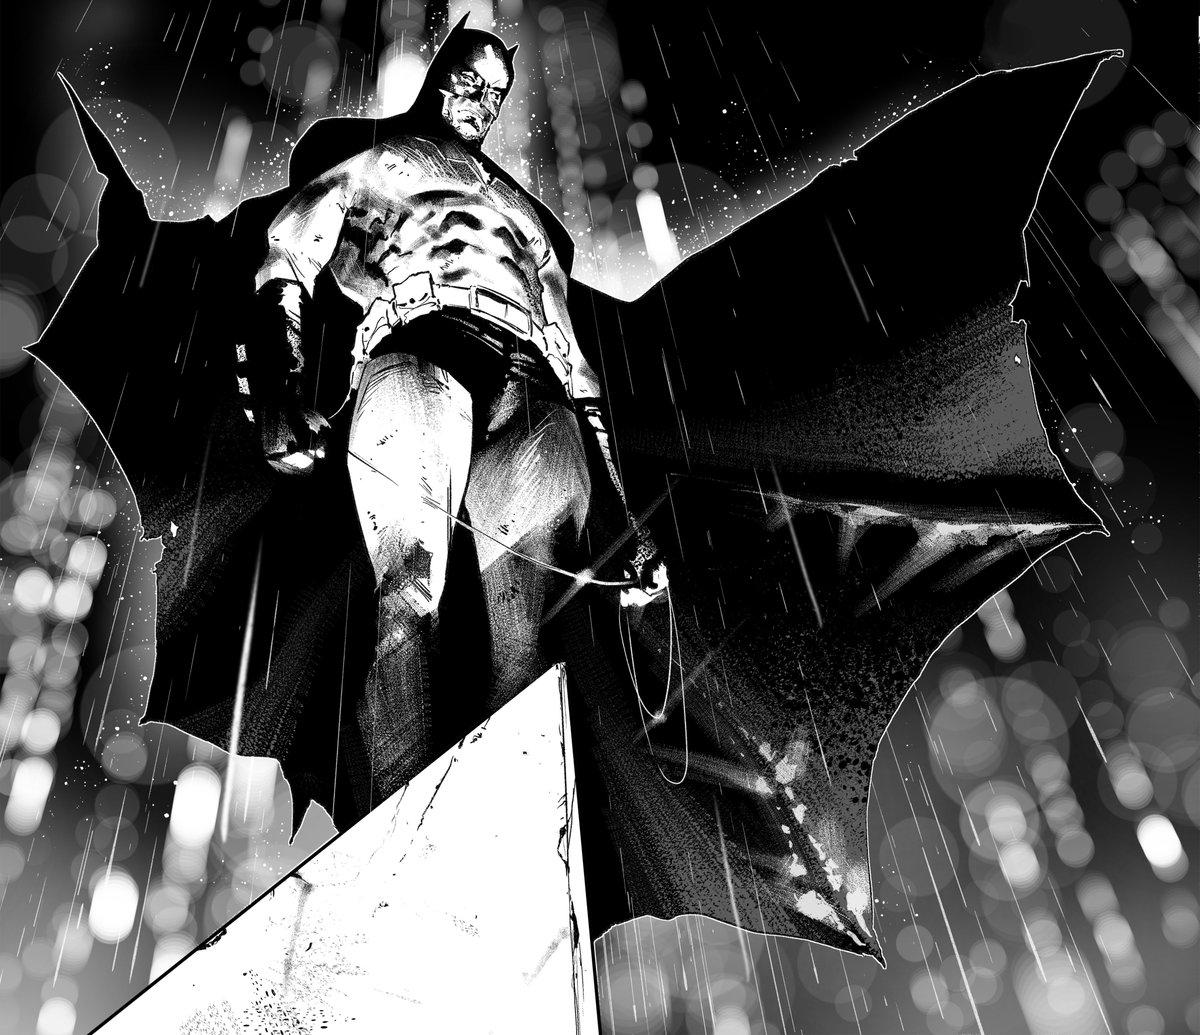 A Dark Knight In an Endless Night: Why Batman Matters